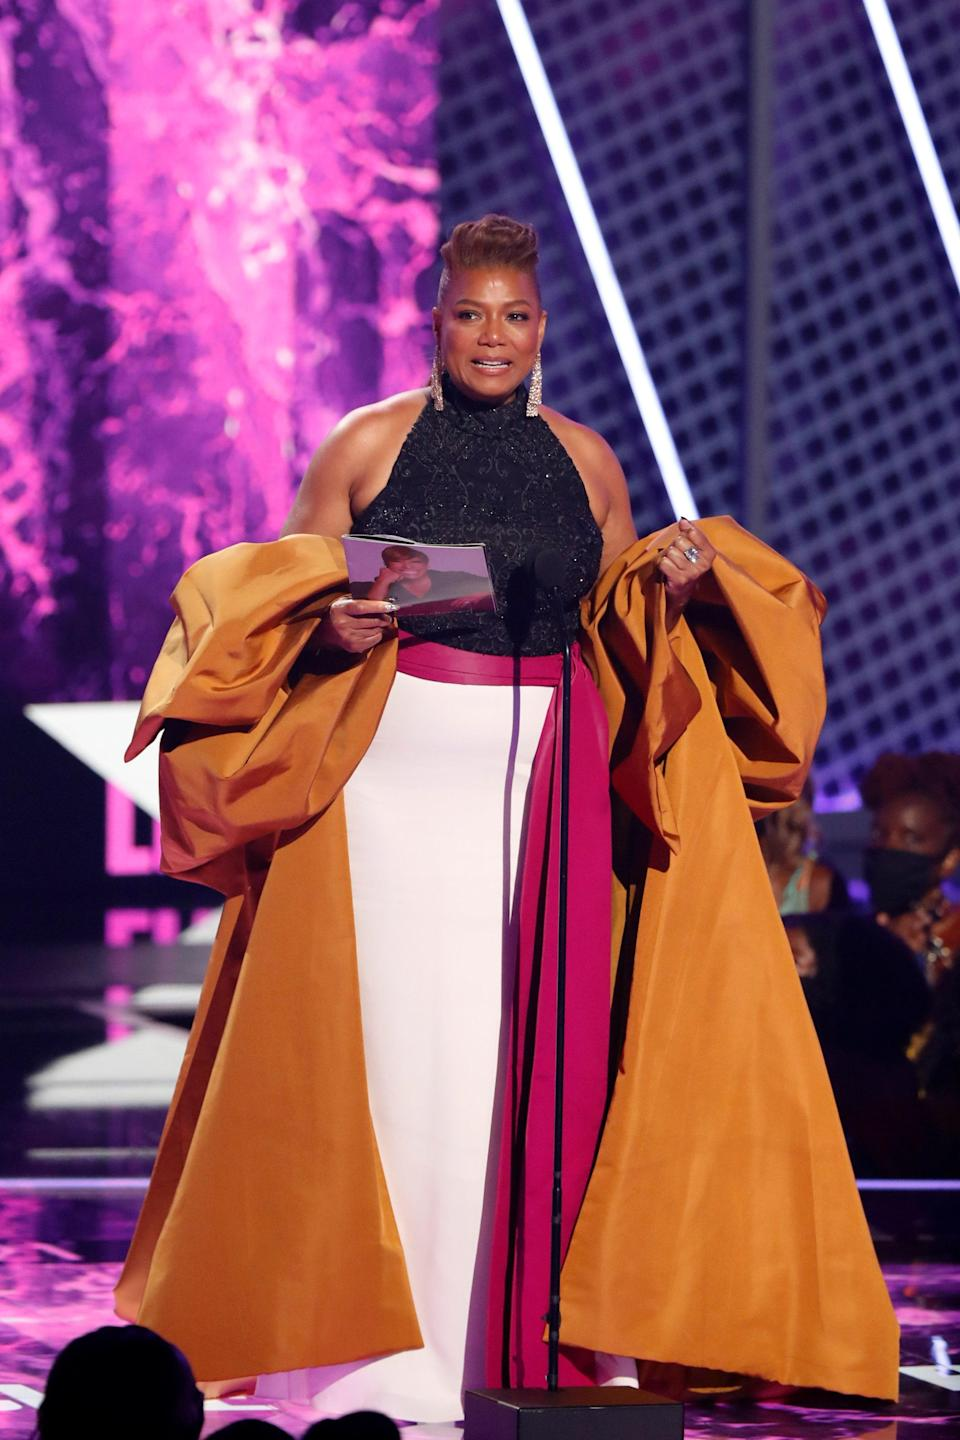 Of course, she had an outfit change to receive the Lifetime Achievement BET Award onstage.